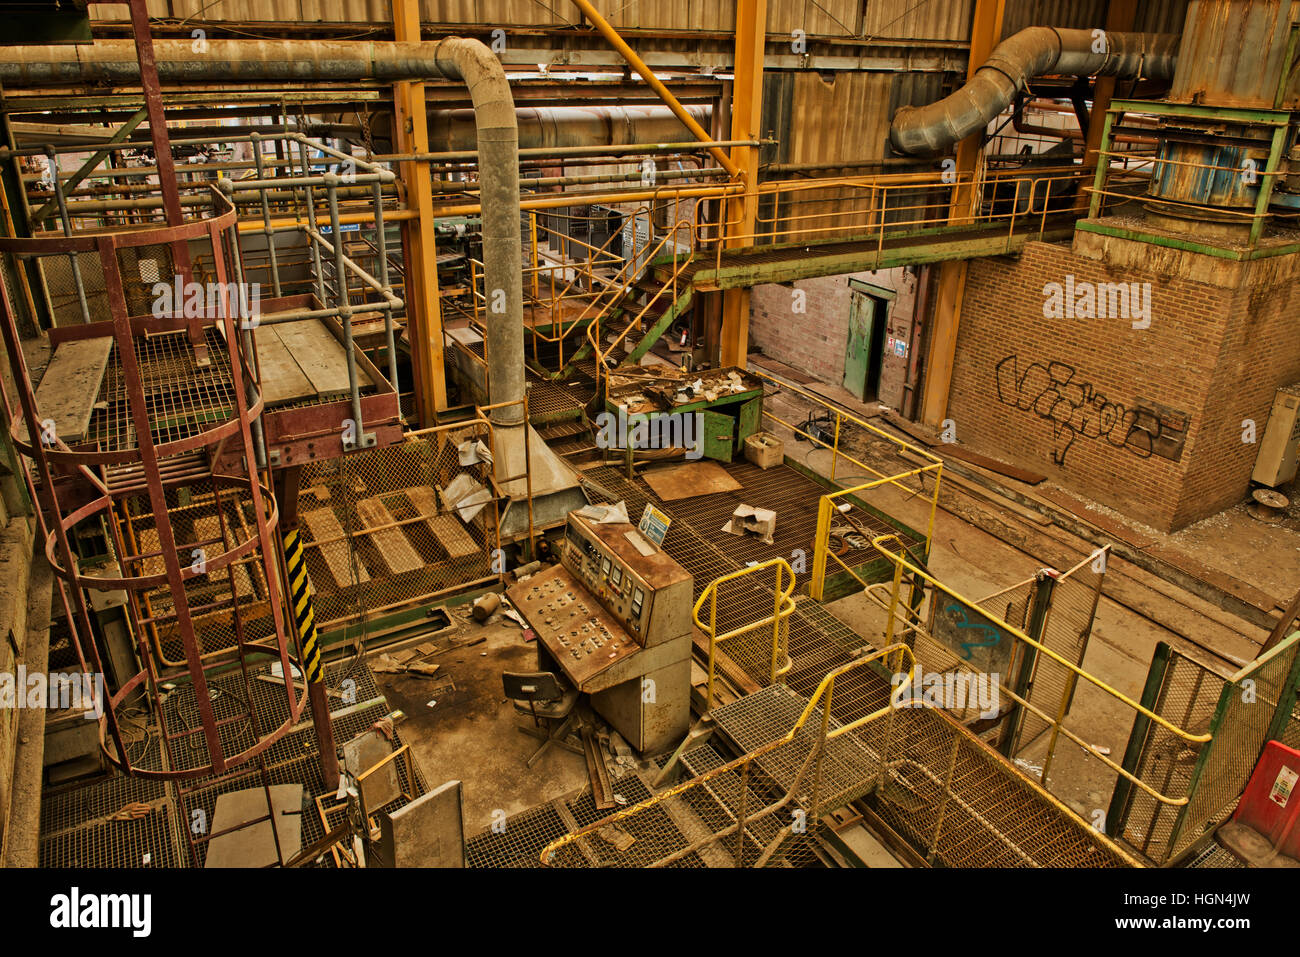 View looking down at part of the now closed Clock House Brickworks, Capel, Near Dorking, Surrey, UK - Stock Image